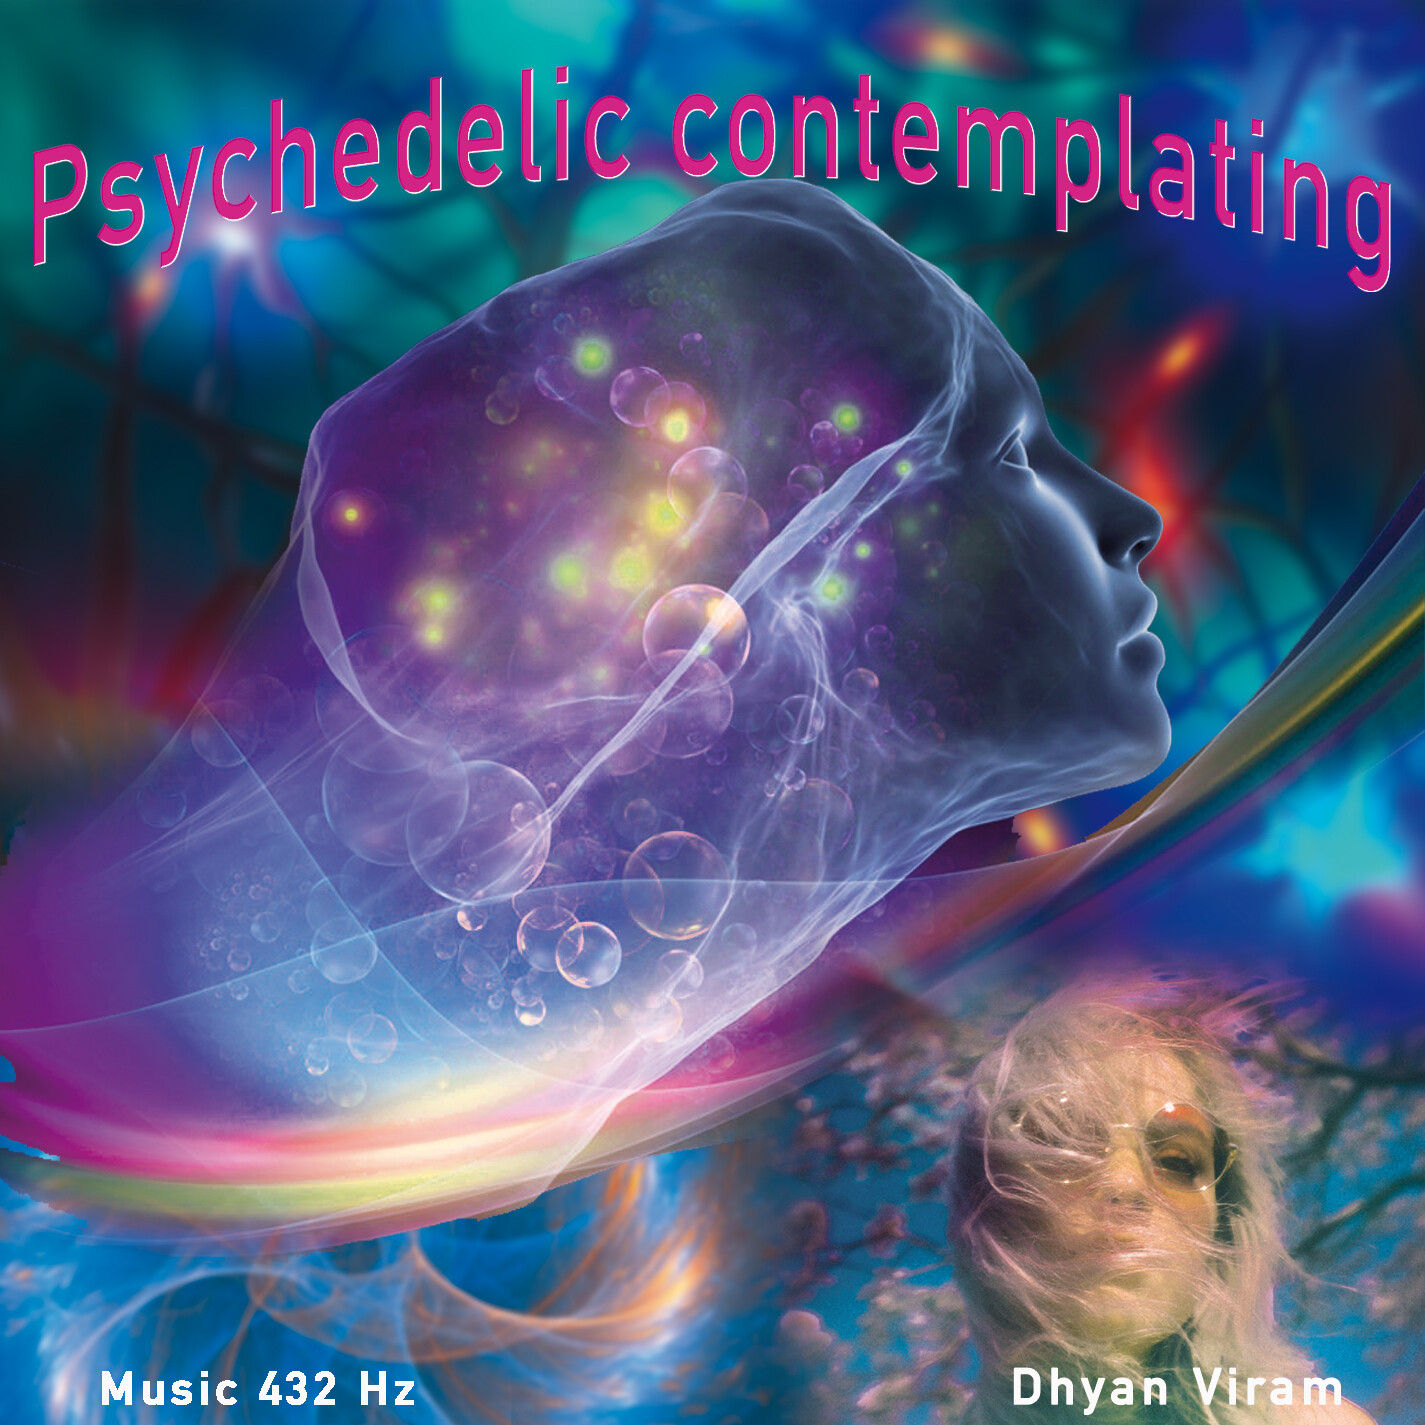 Psychedelic contemplating